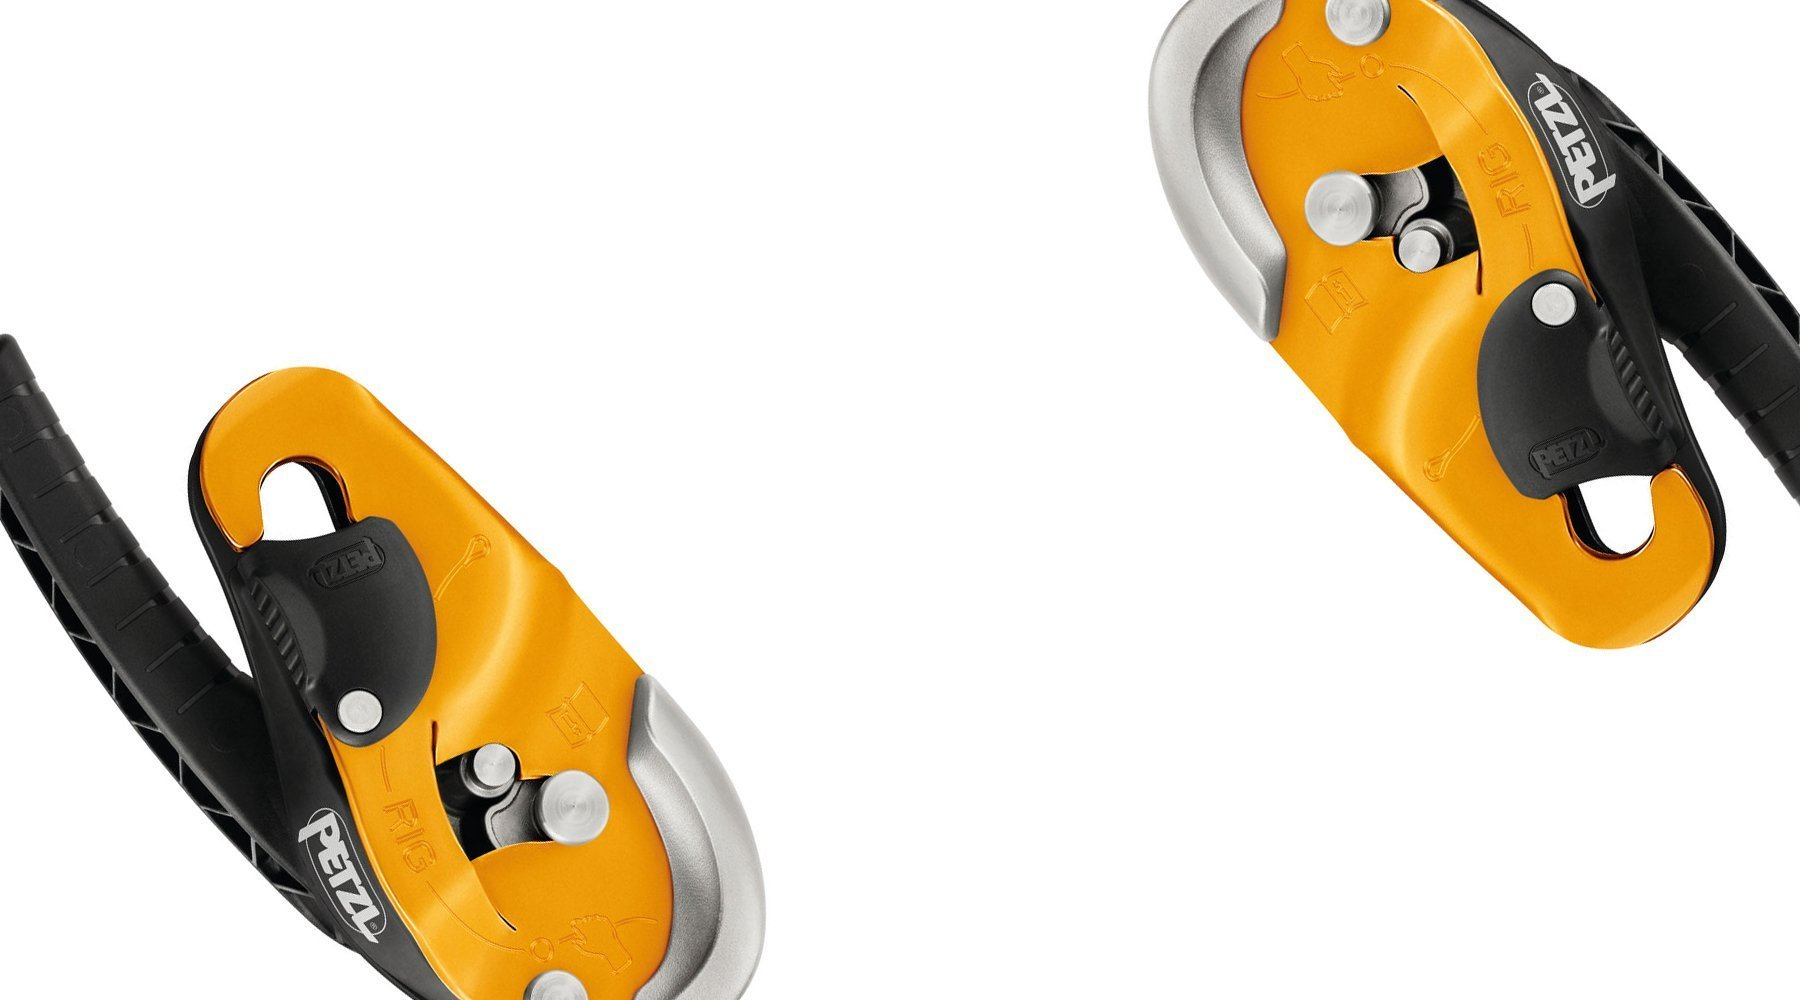 PETZL'S NEW RIG: TECH TIPS UPDATED